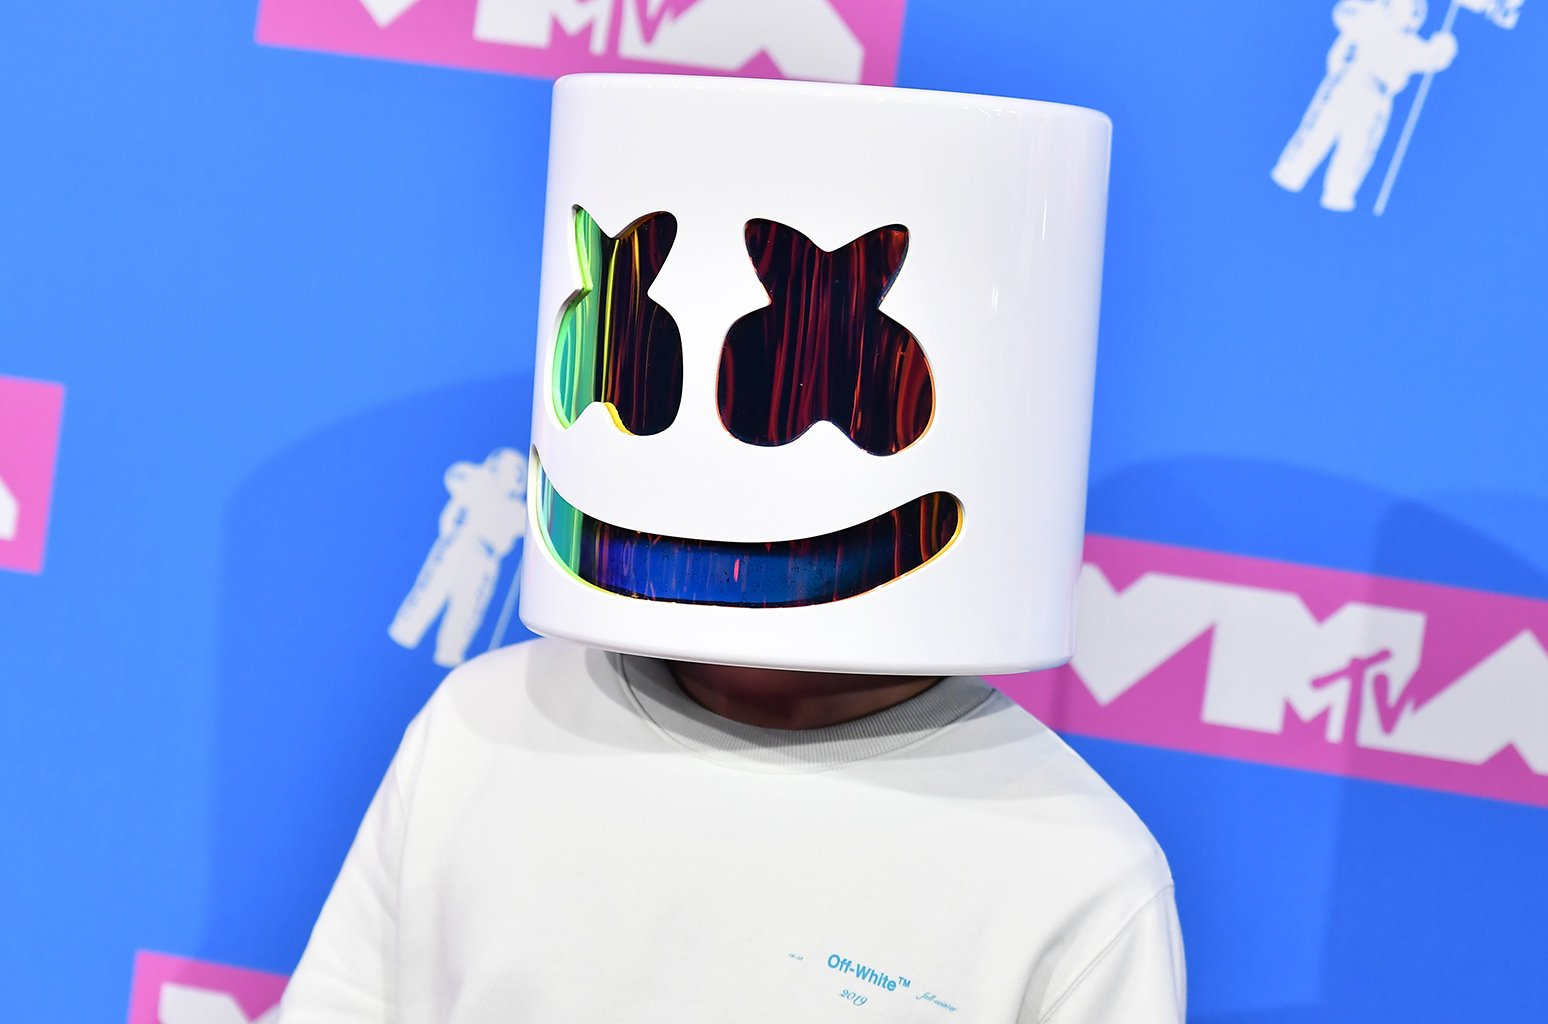 .@marshmellomusic donates $500,000 to KIND Foundation to protect children's rights https://t.co/Or9JhtiJMg https://t.co/X2WDZIIE4j